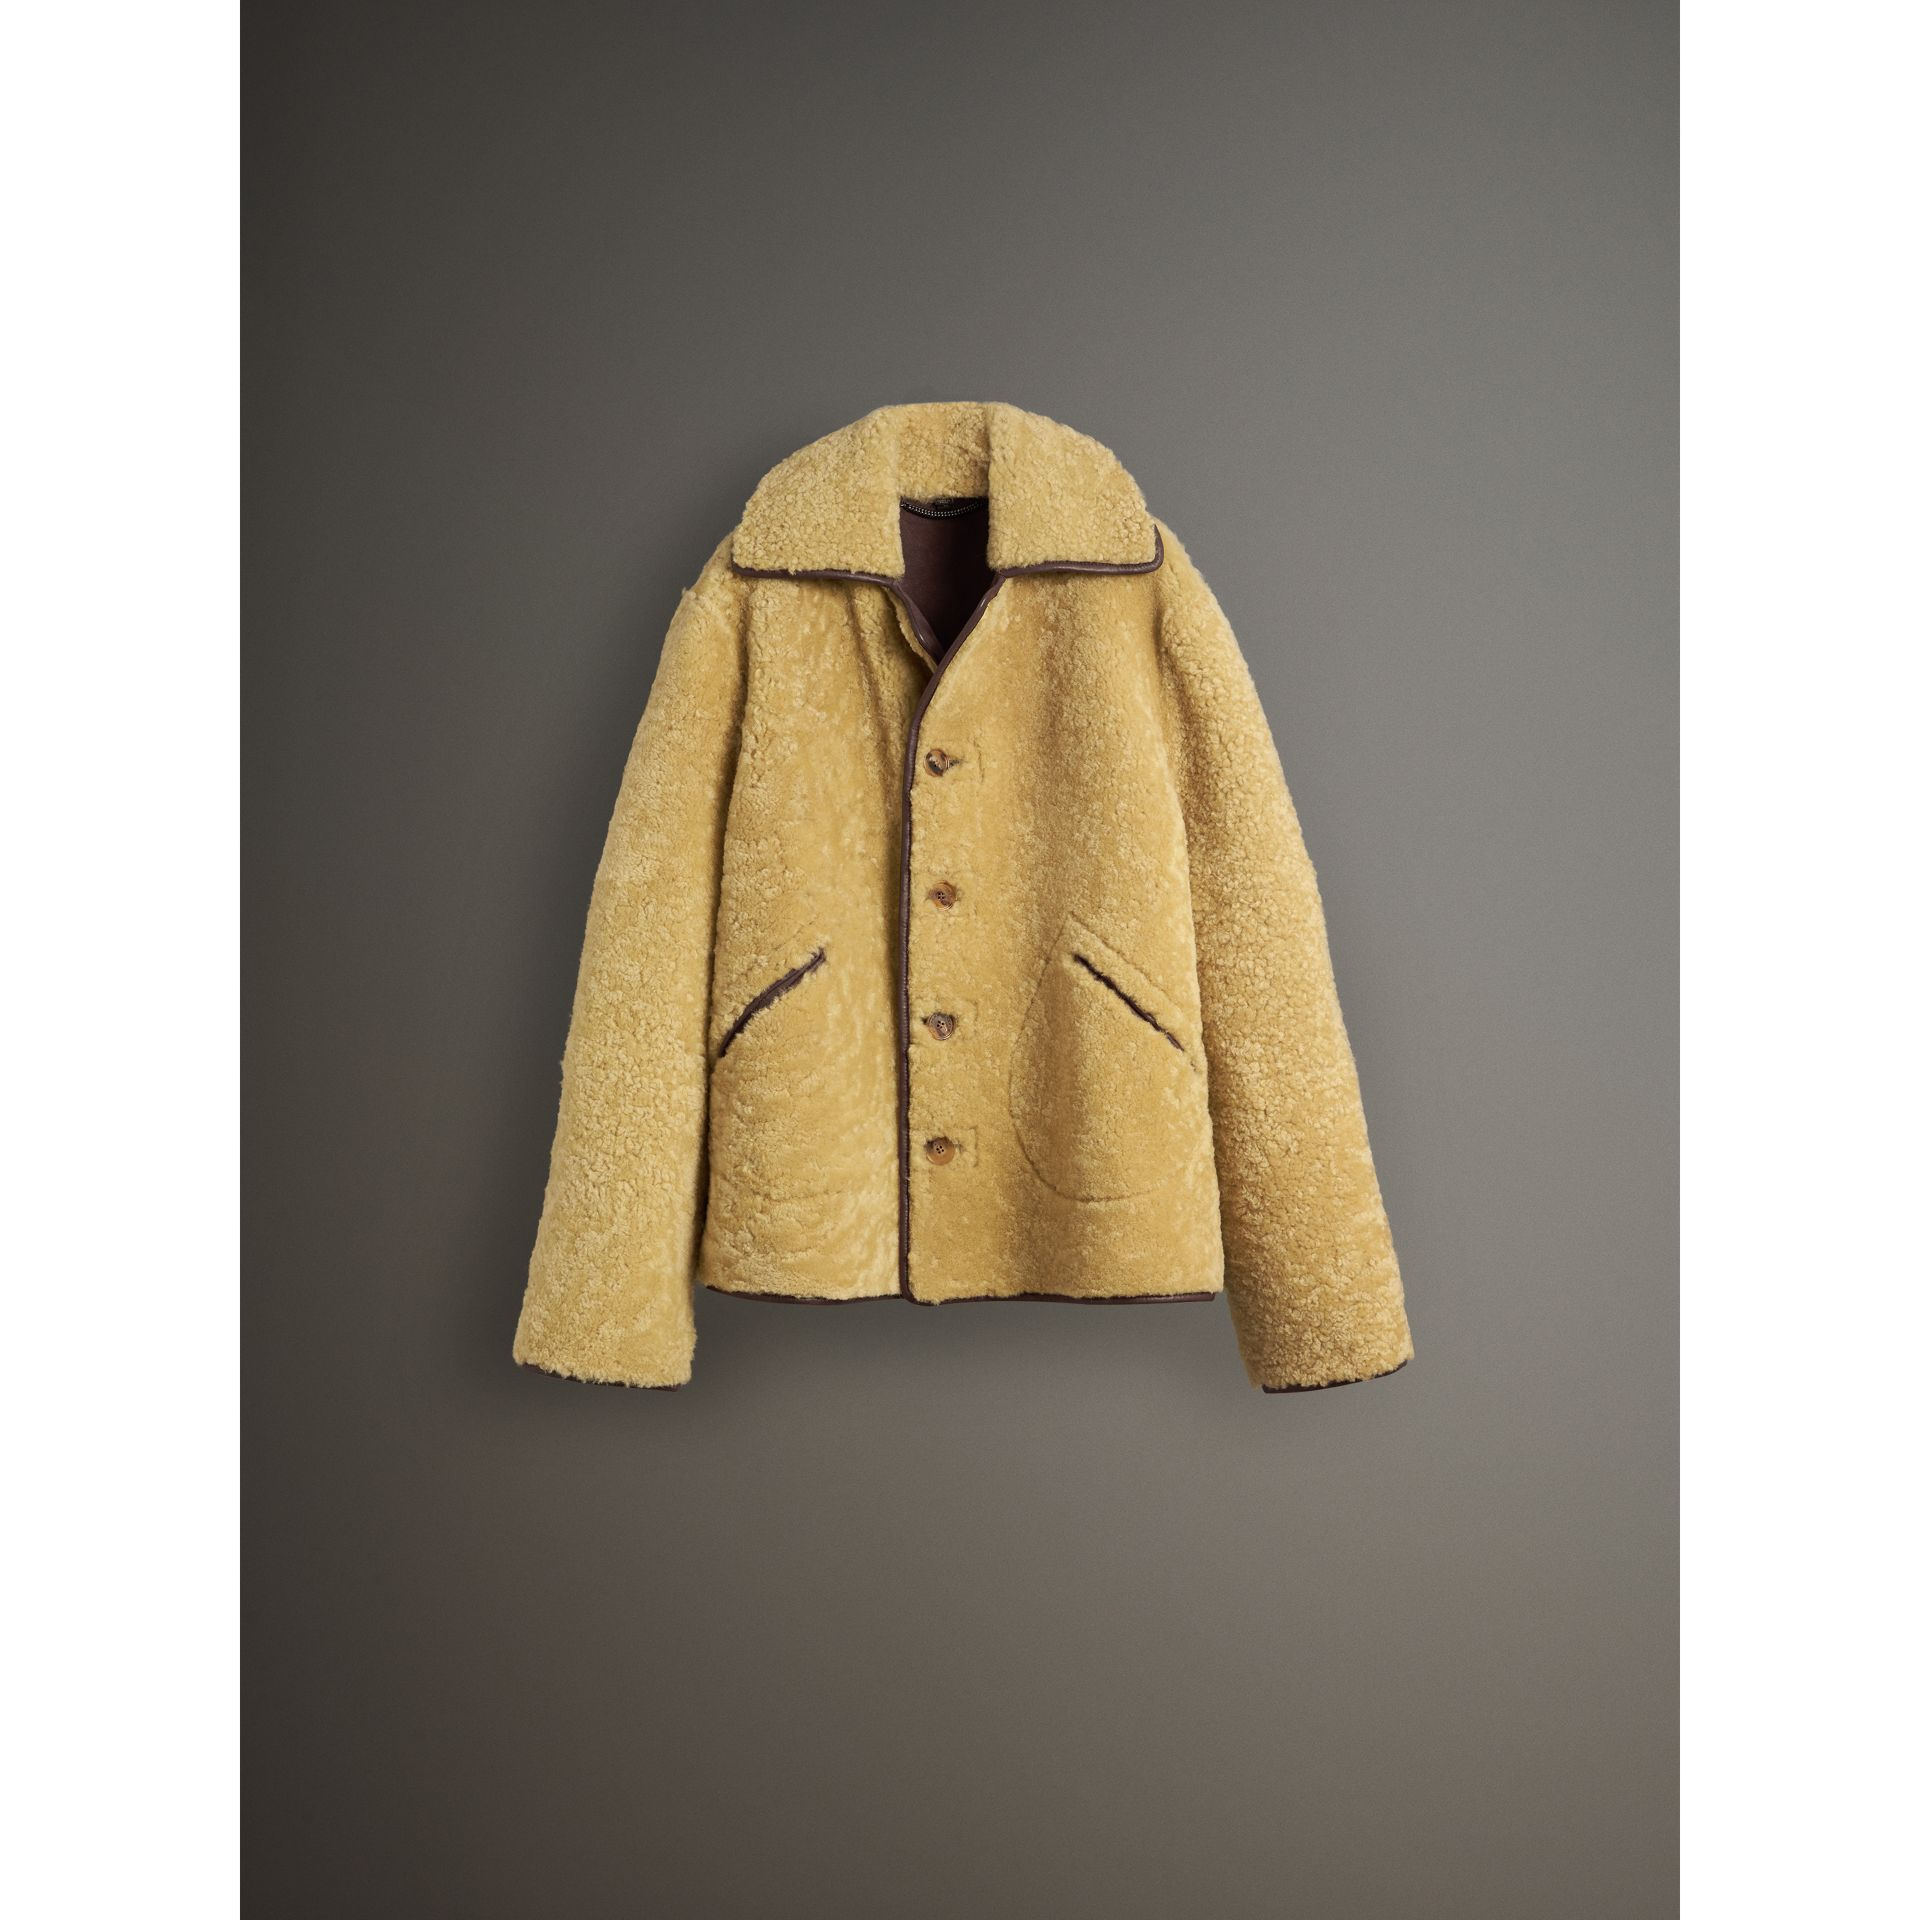 Relaxed Fit Shearling and Lambskin Jacket in Chocolate/light Citrus - Men | Burberry Australia - gallery image 4